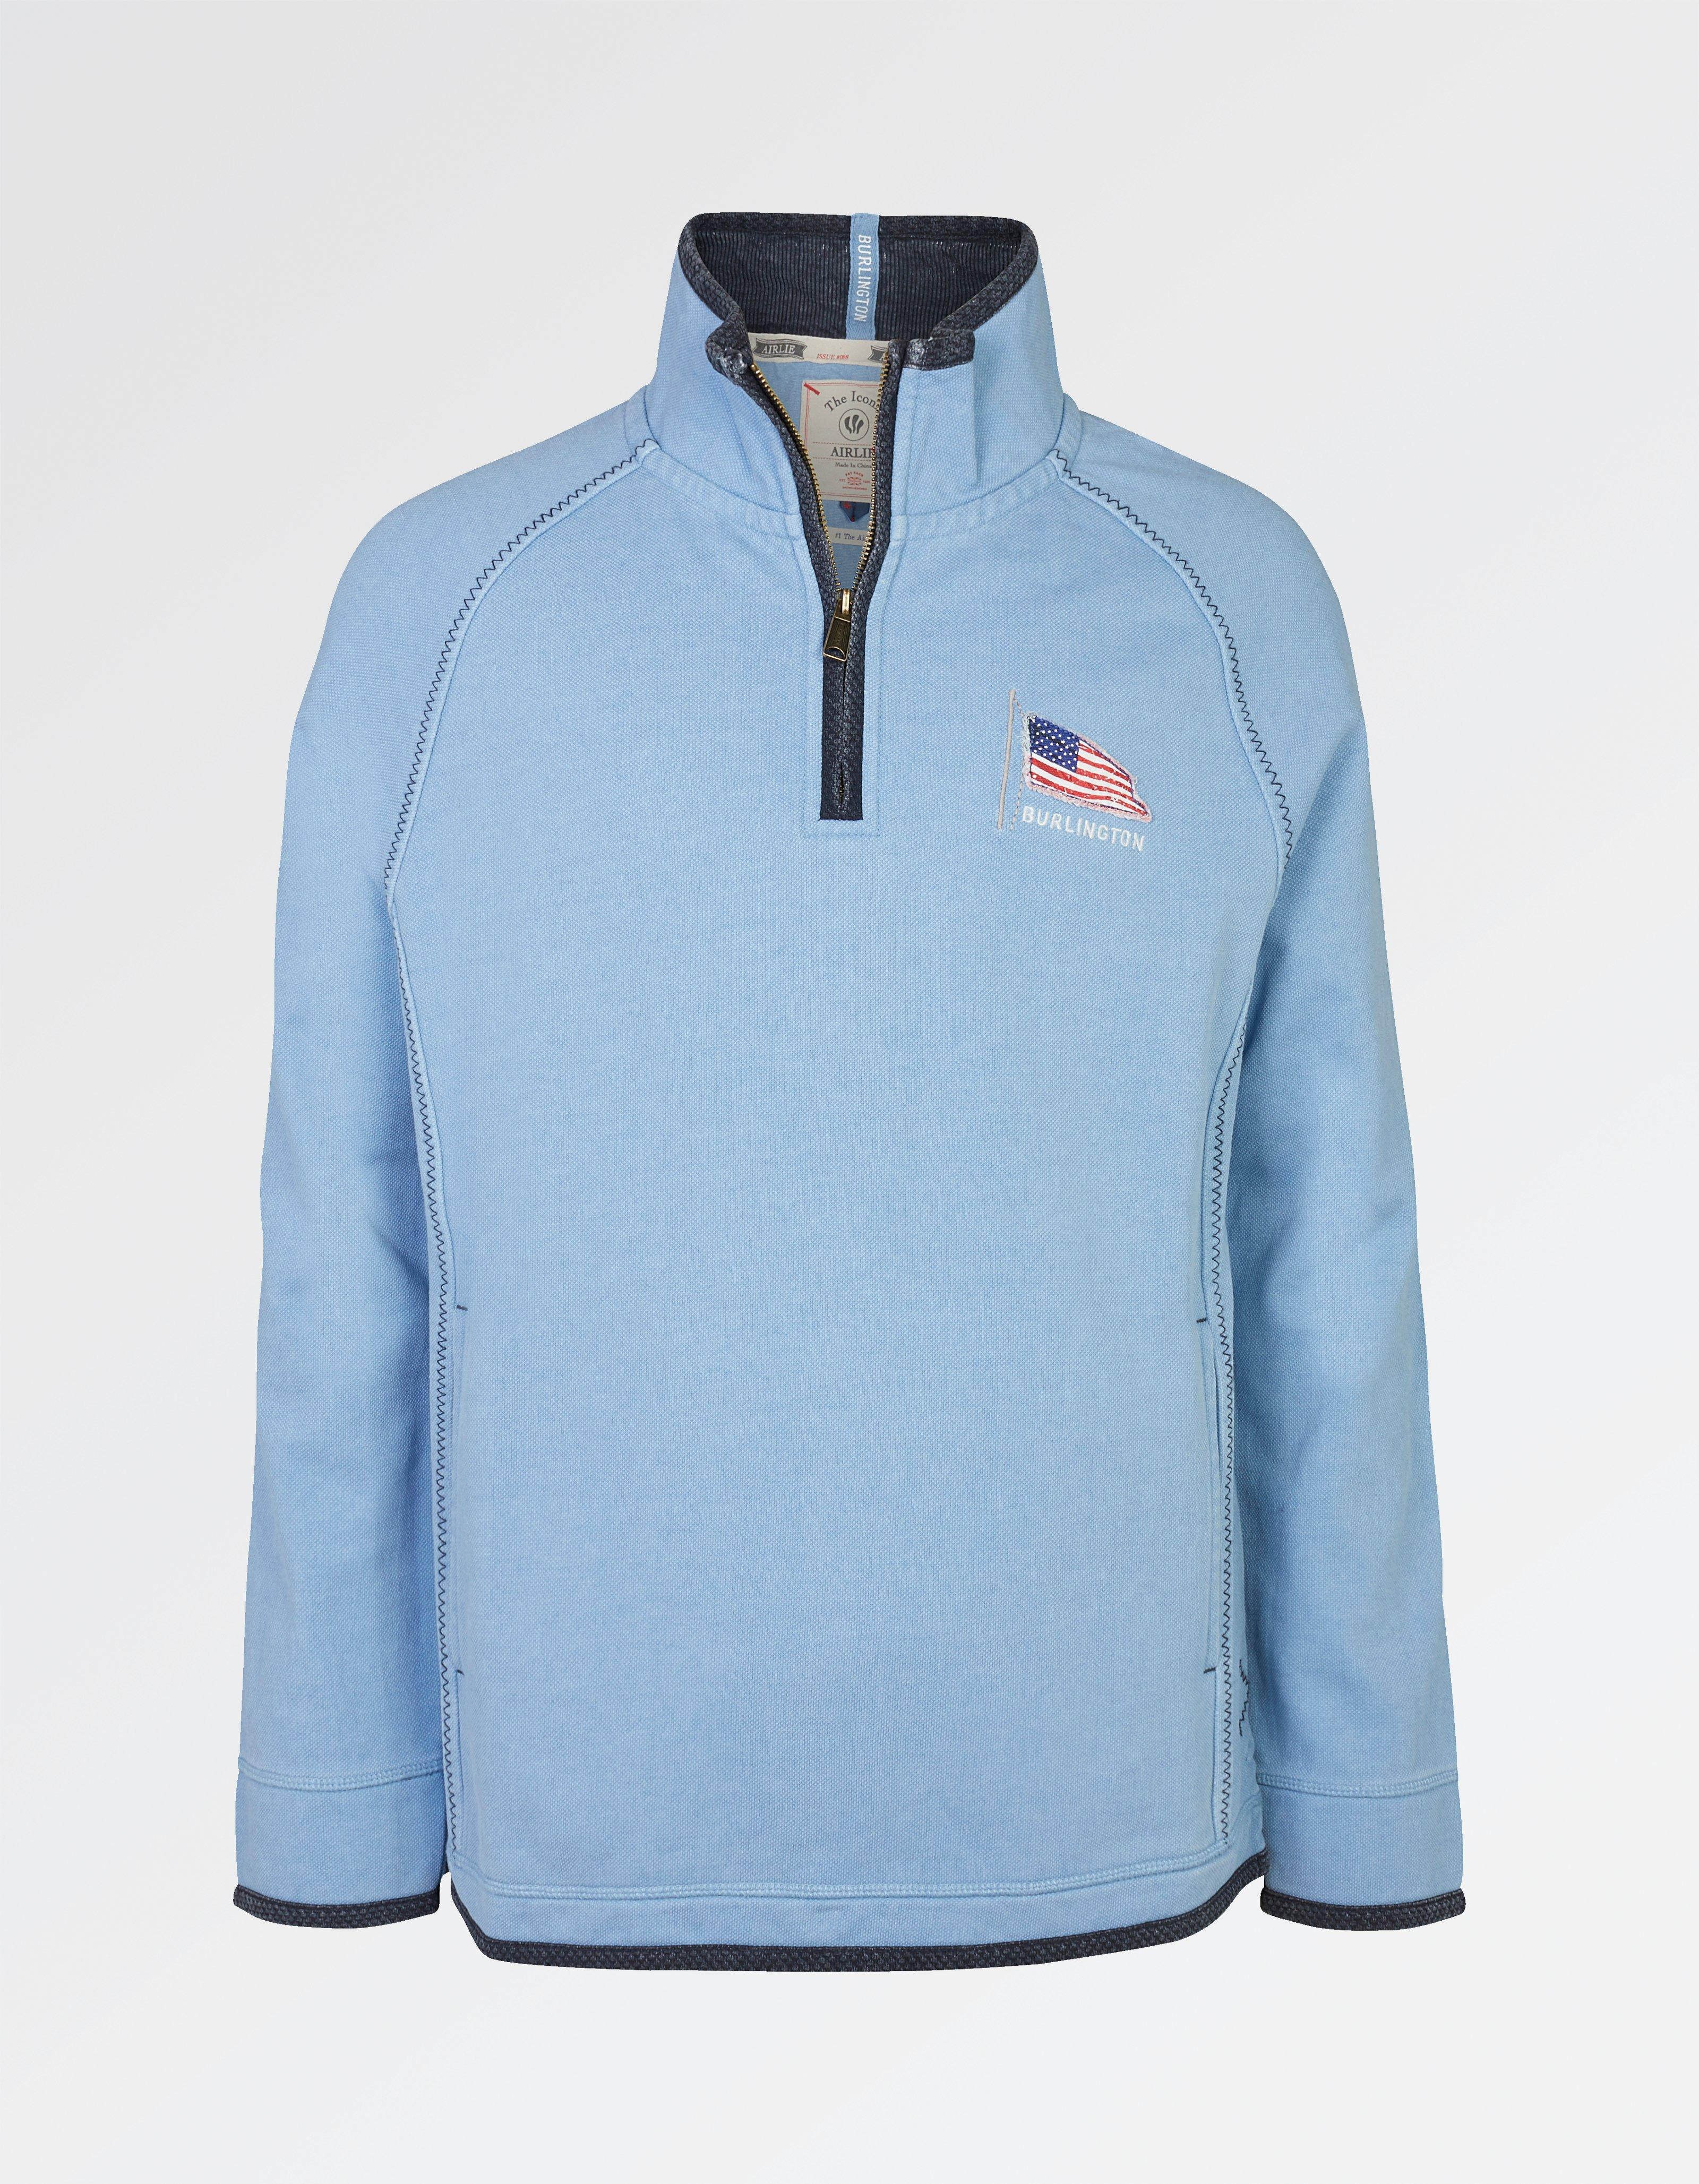 Burlington Pocket Airlie Sweatshirt